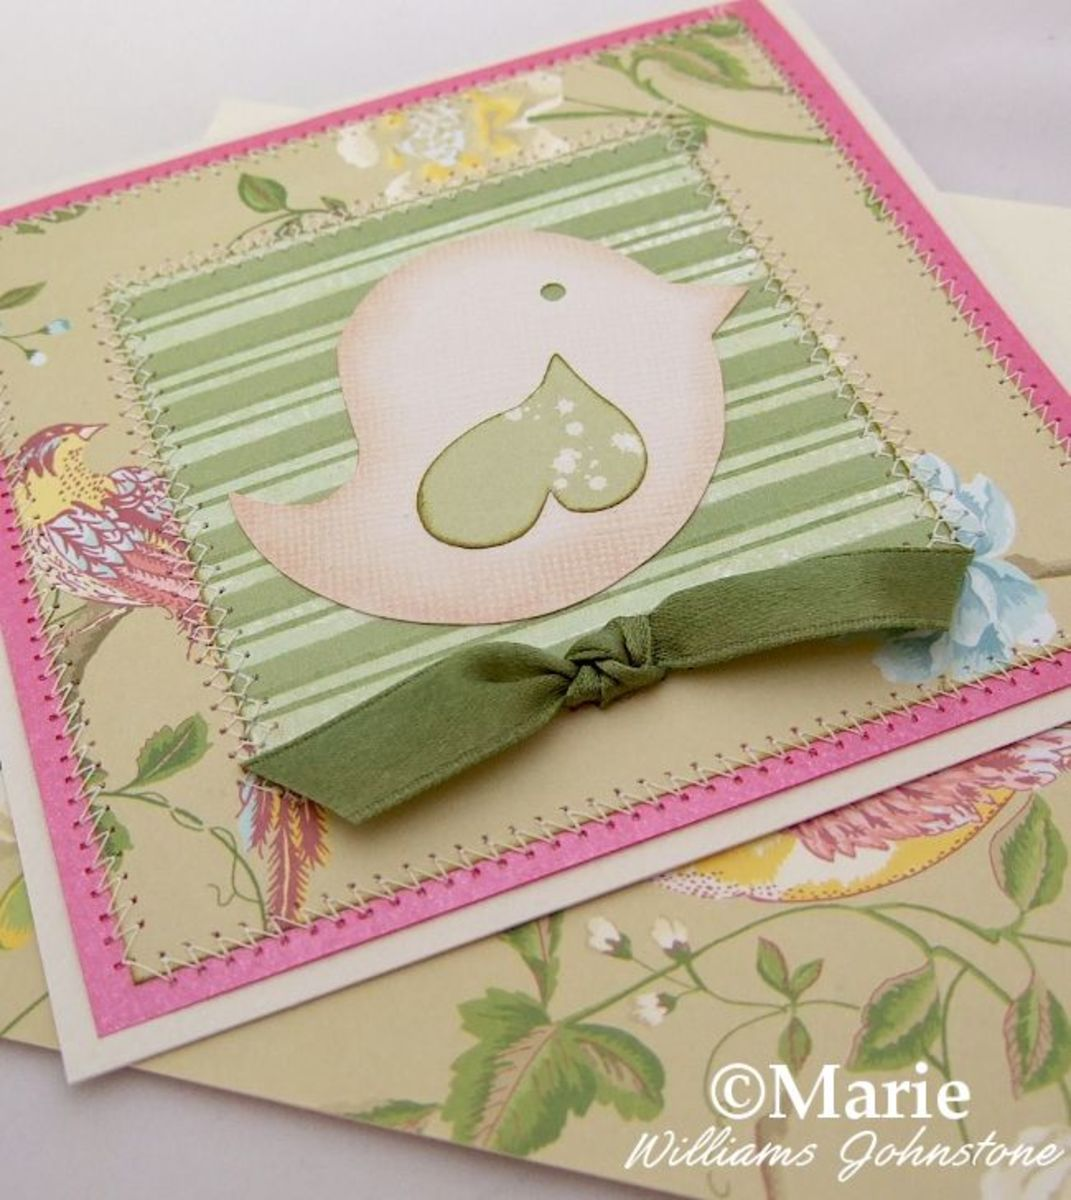 Whimsical spring bird design on a handmade card in greens and pink